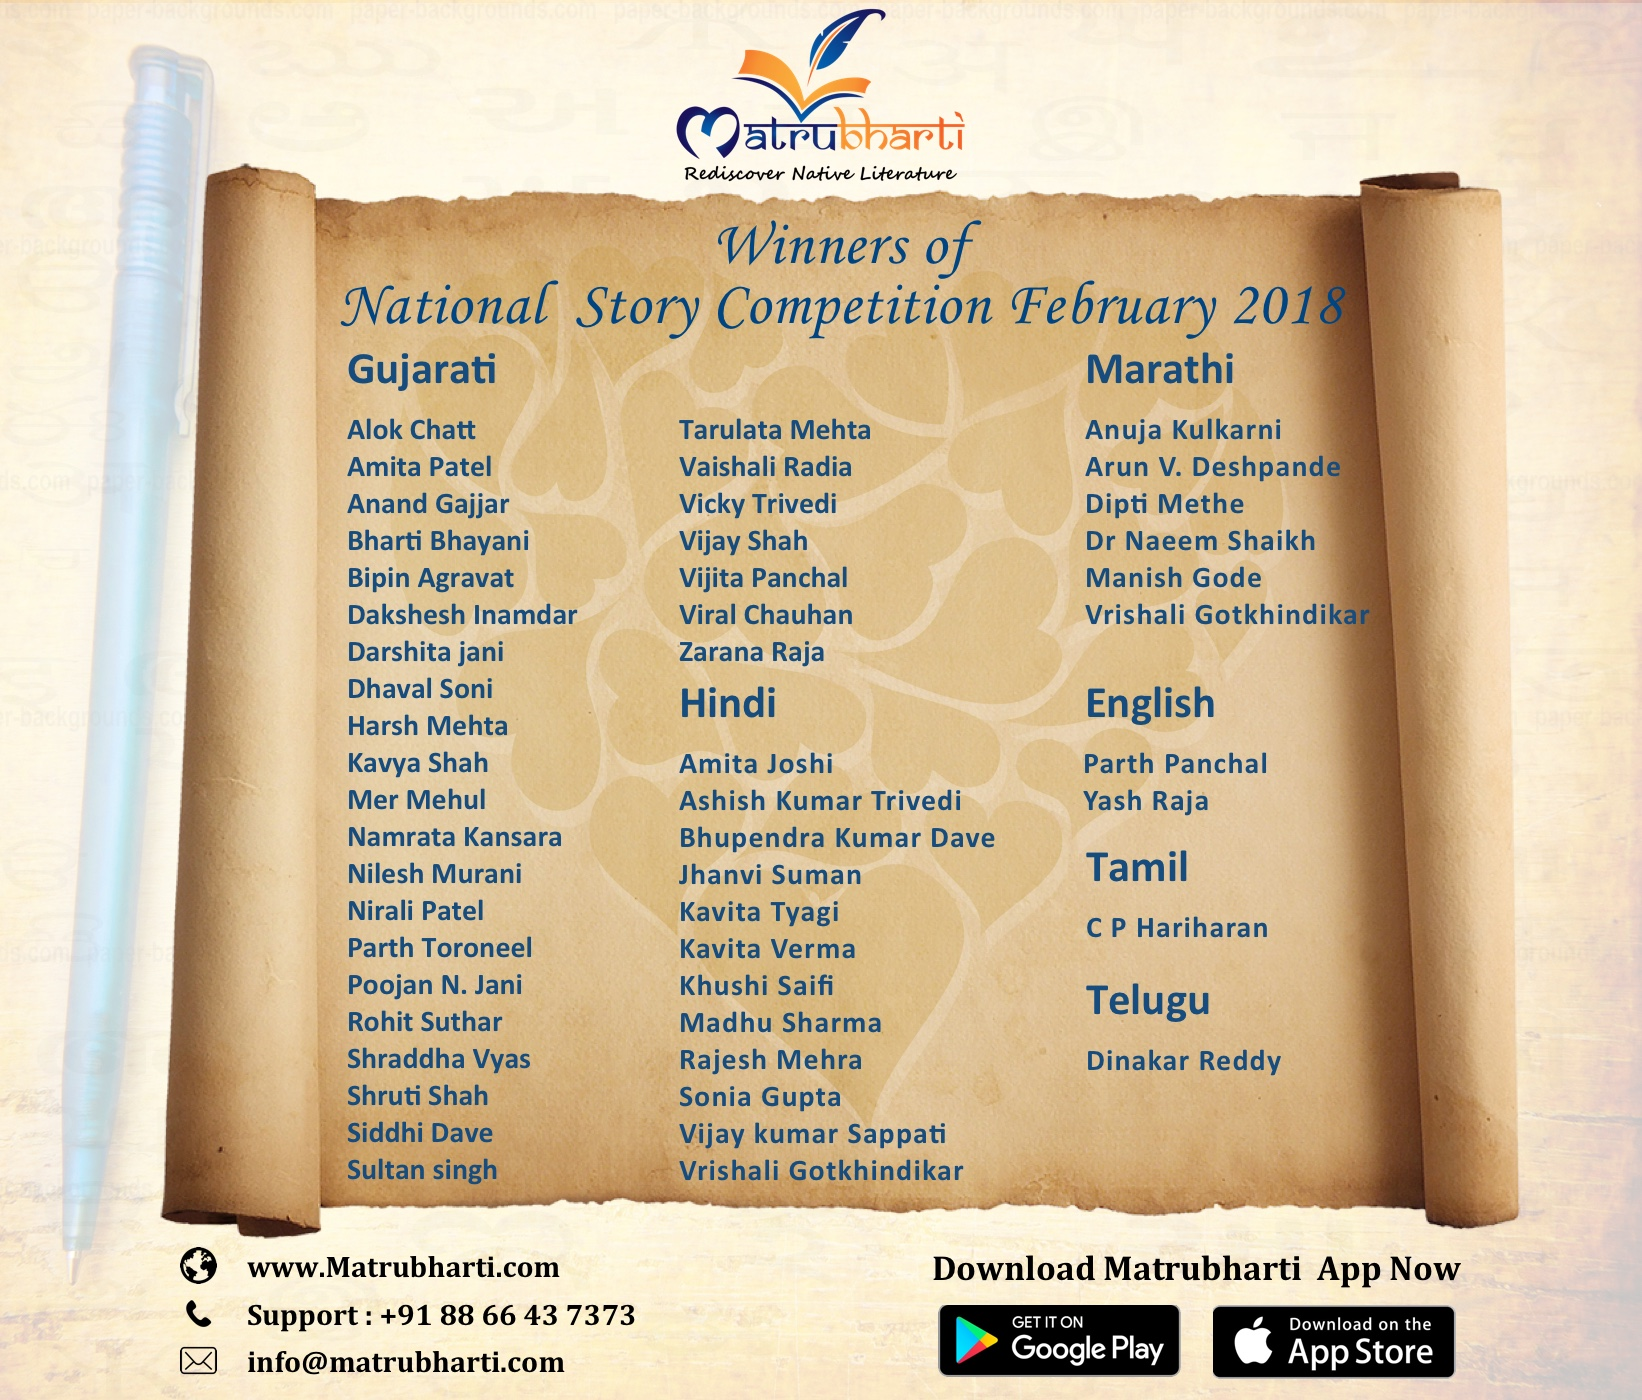 Winners of National Story Competition February 2018 2 (1)